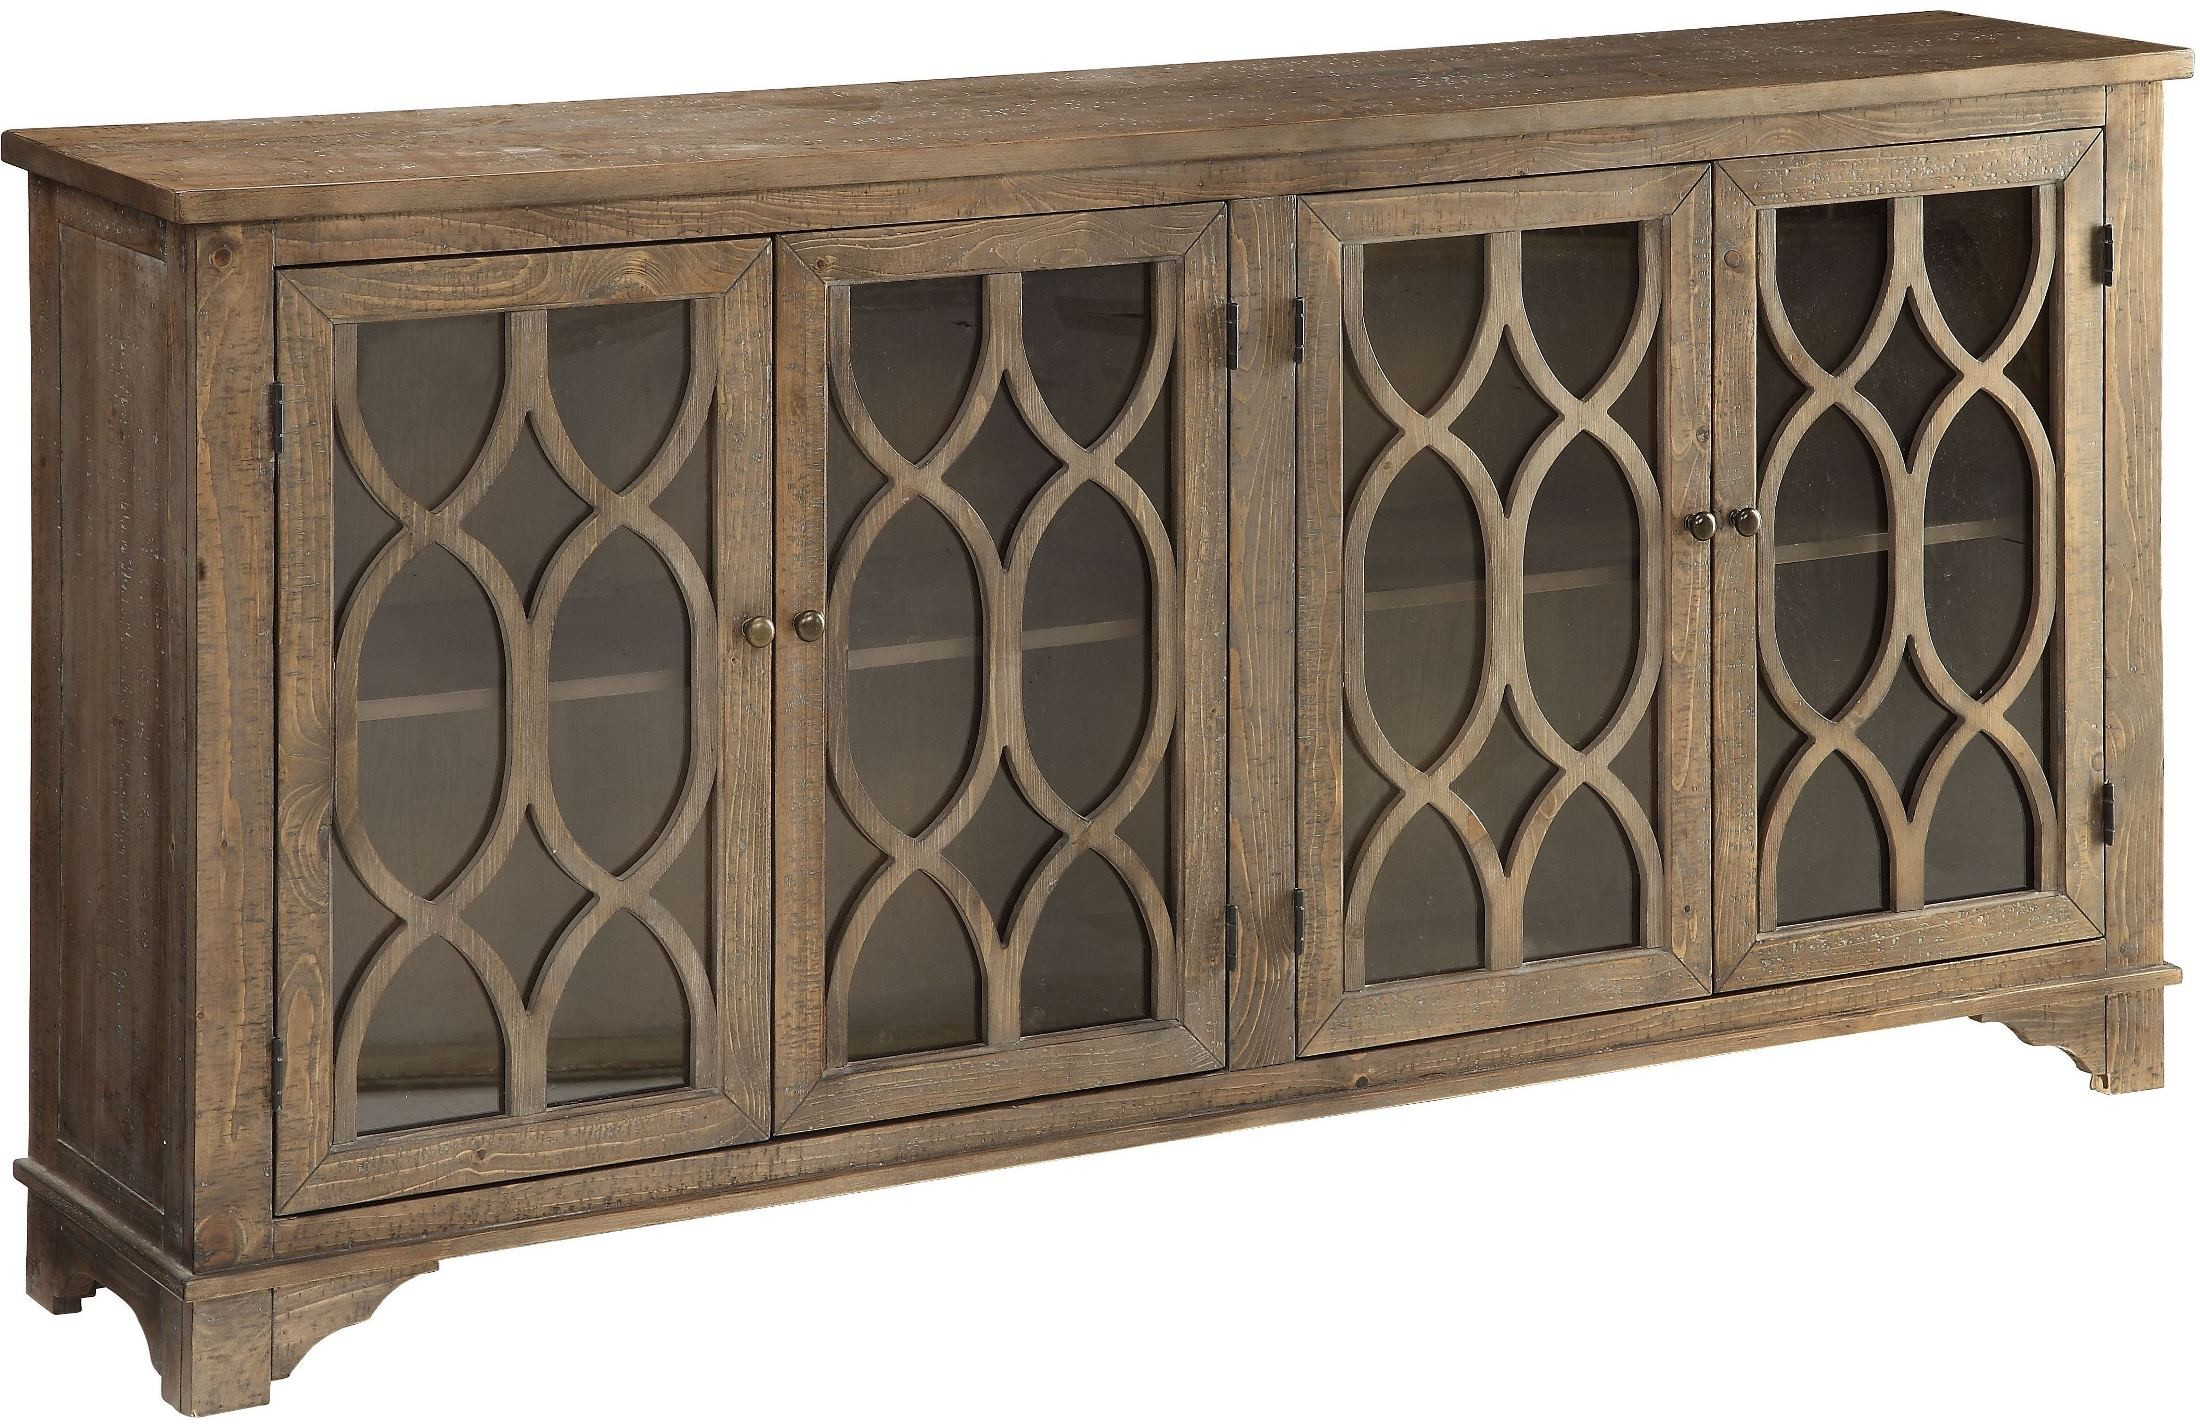 Cayhill Distressed Brown 4 Door Media Credenza from Coast to Coast